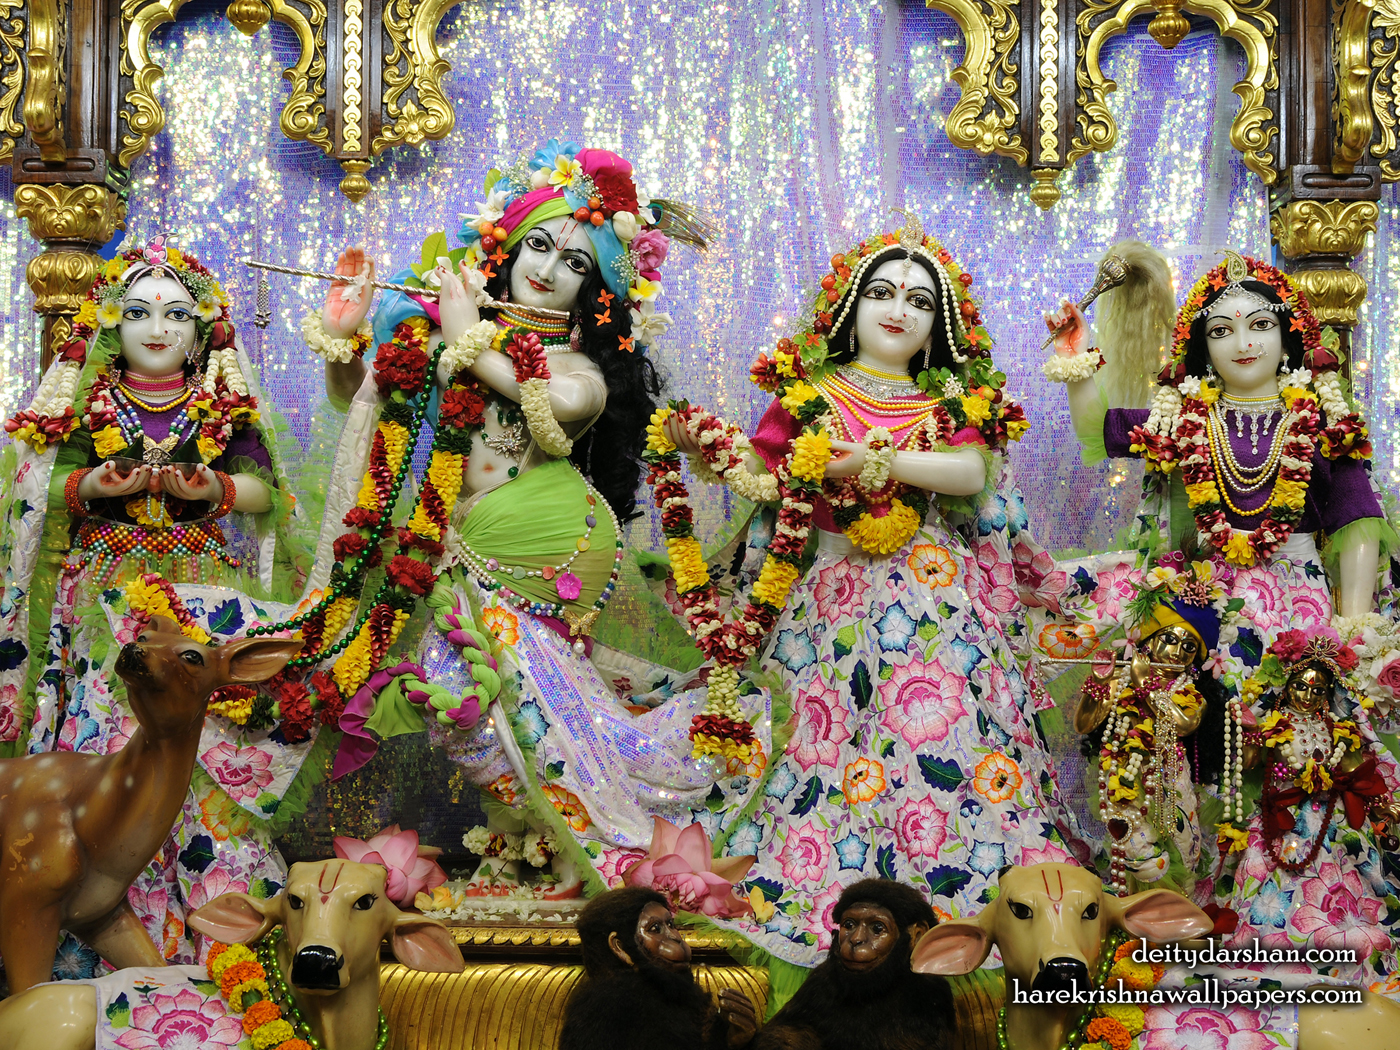 Sri Sri Radha Gopinath Lalita Vishakha Wallpaper (072) Size 1400x1050 Download